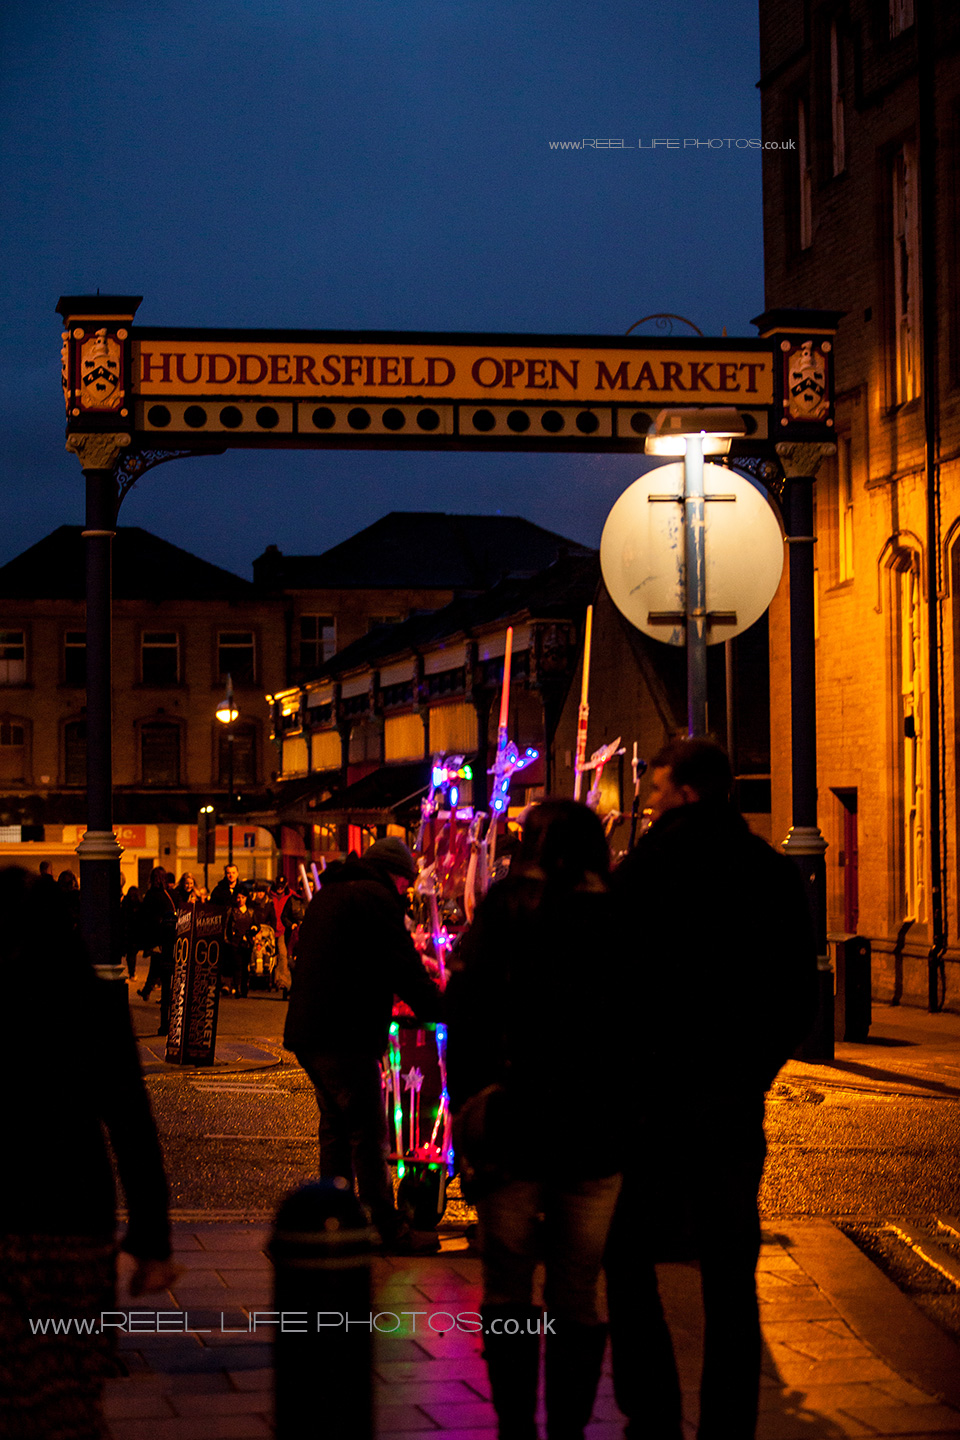 Huddersfield Market at night